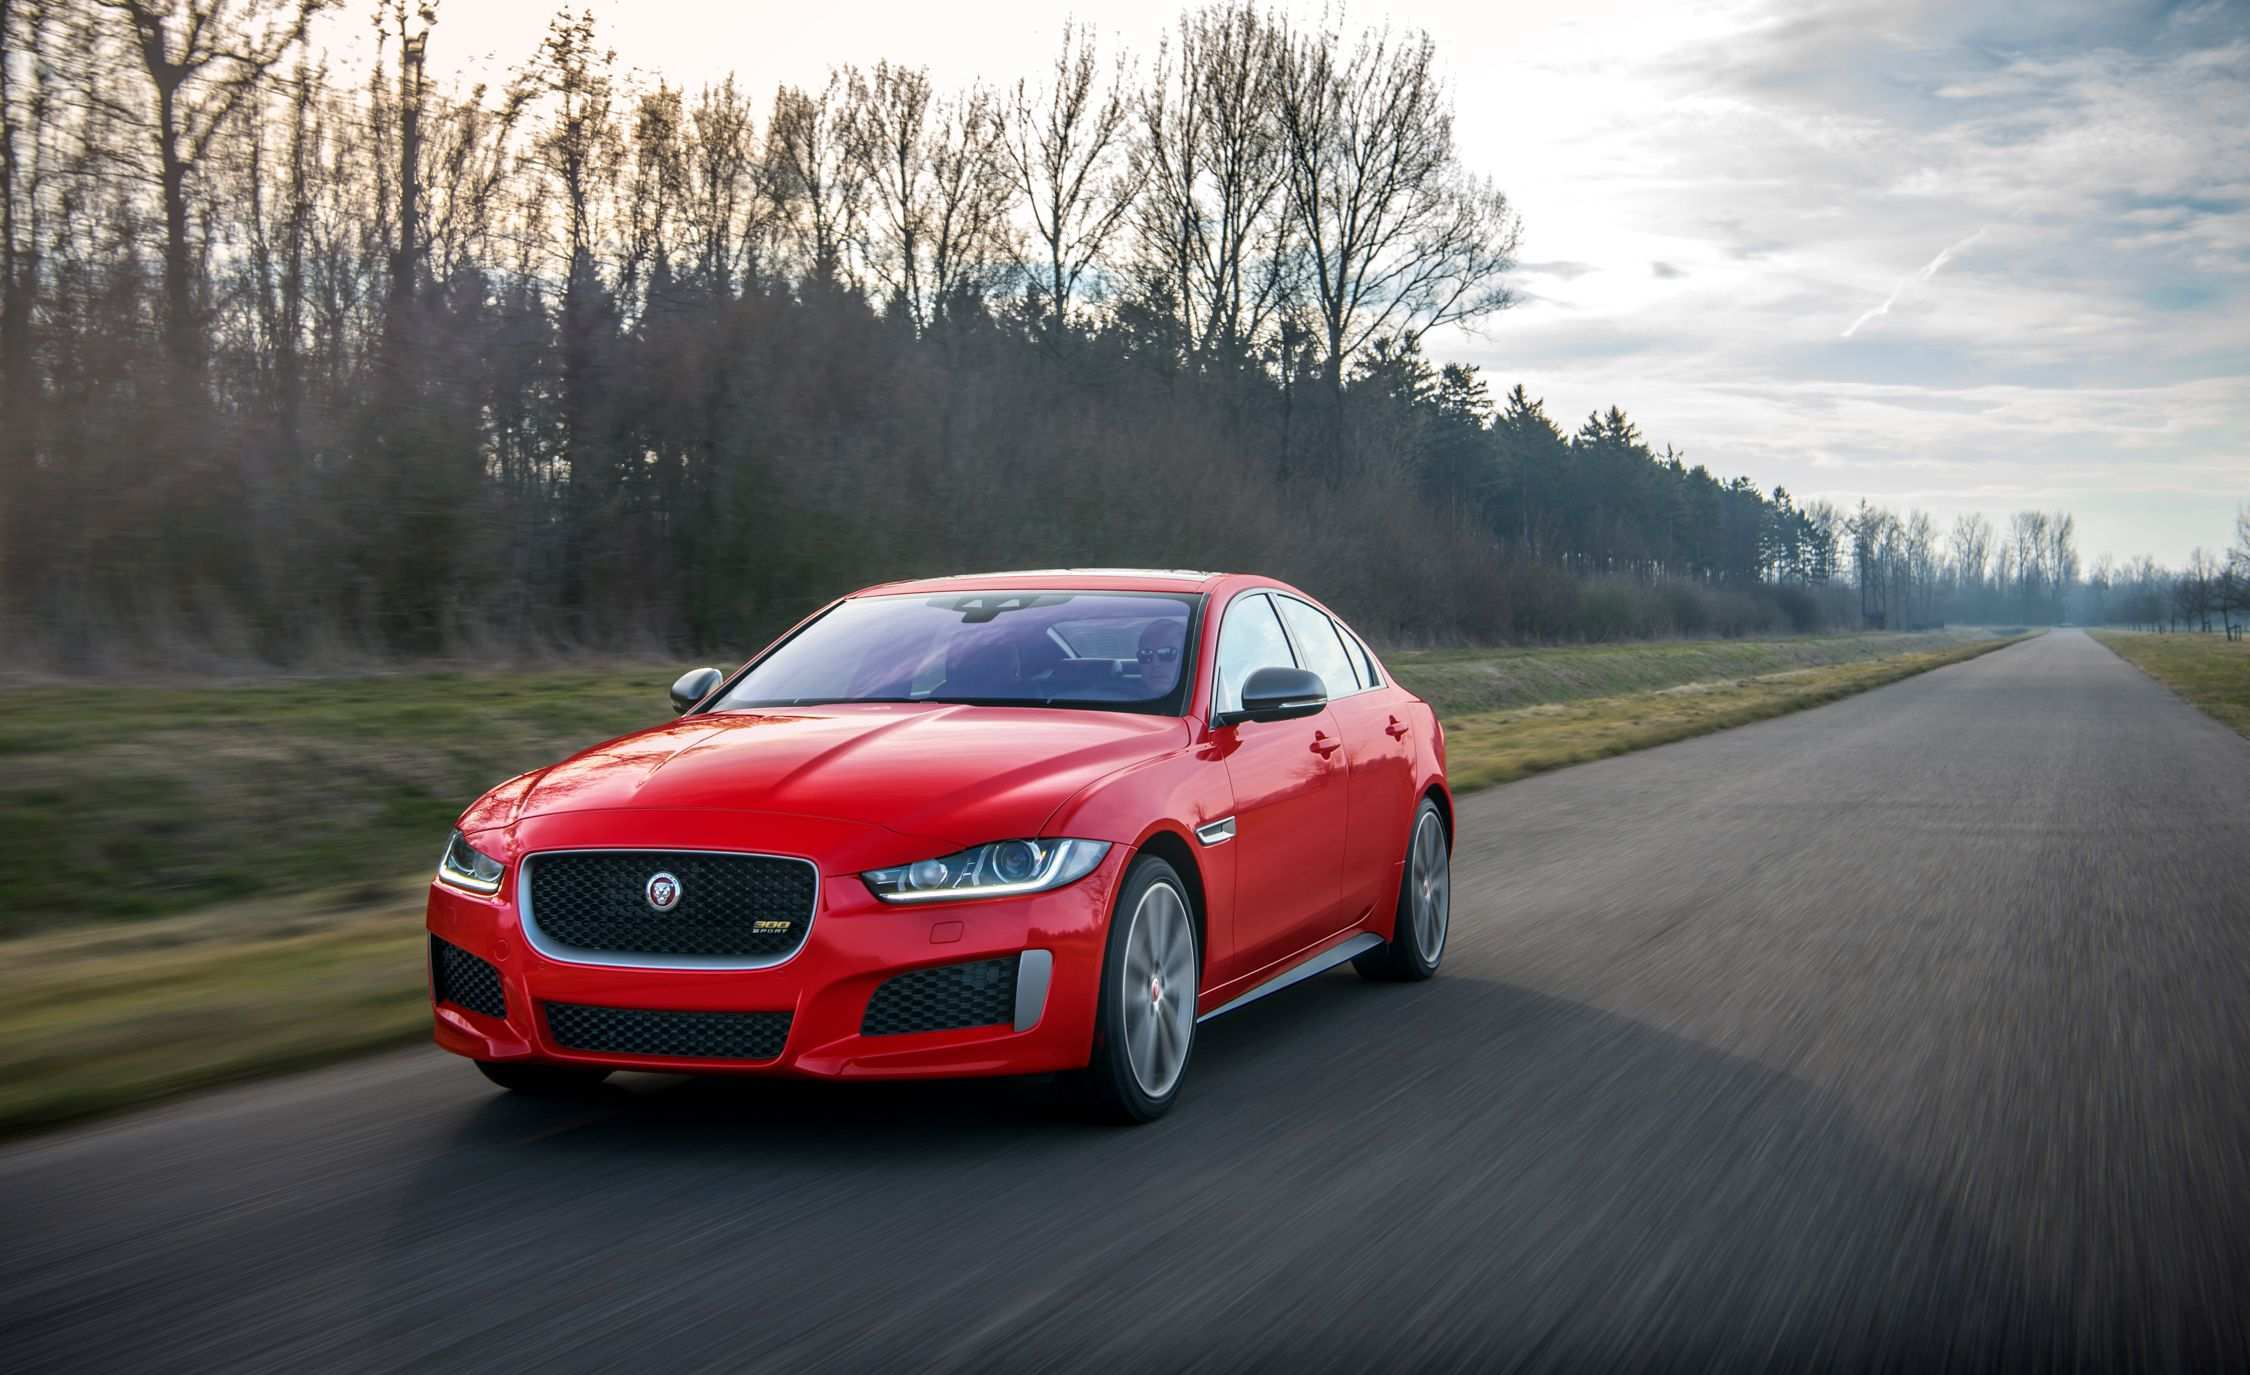 42 The Best 2019 Jaguar Xe Landmark Review